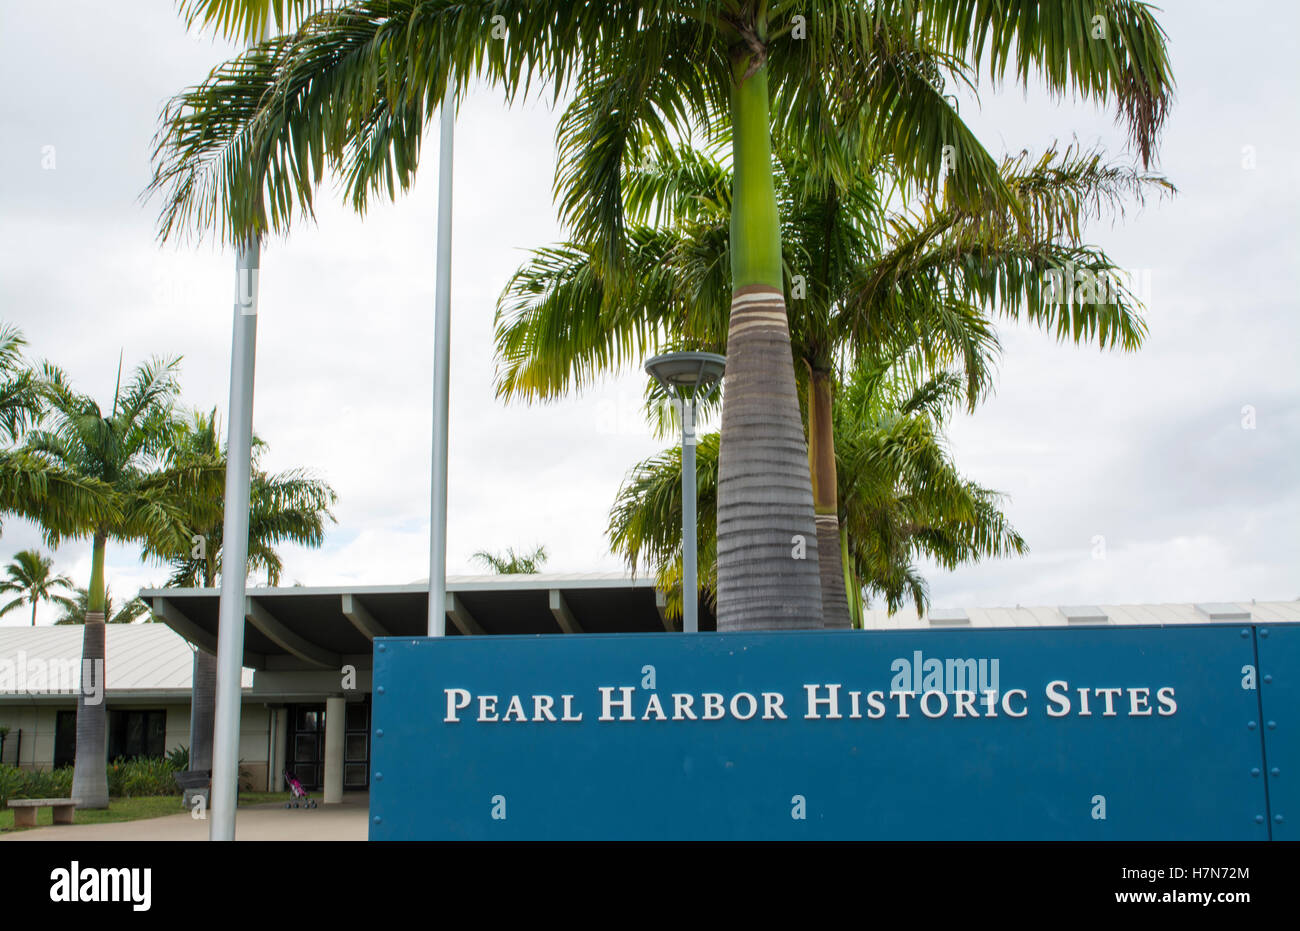 Honolulu, Hawaii Pearl Harbor Memorial war dead Japan bombing entrance - Stock Image